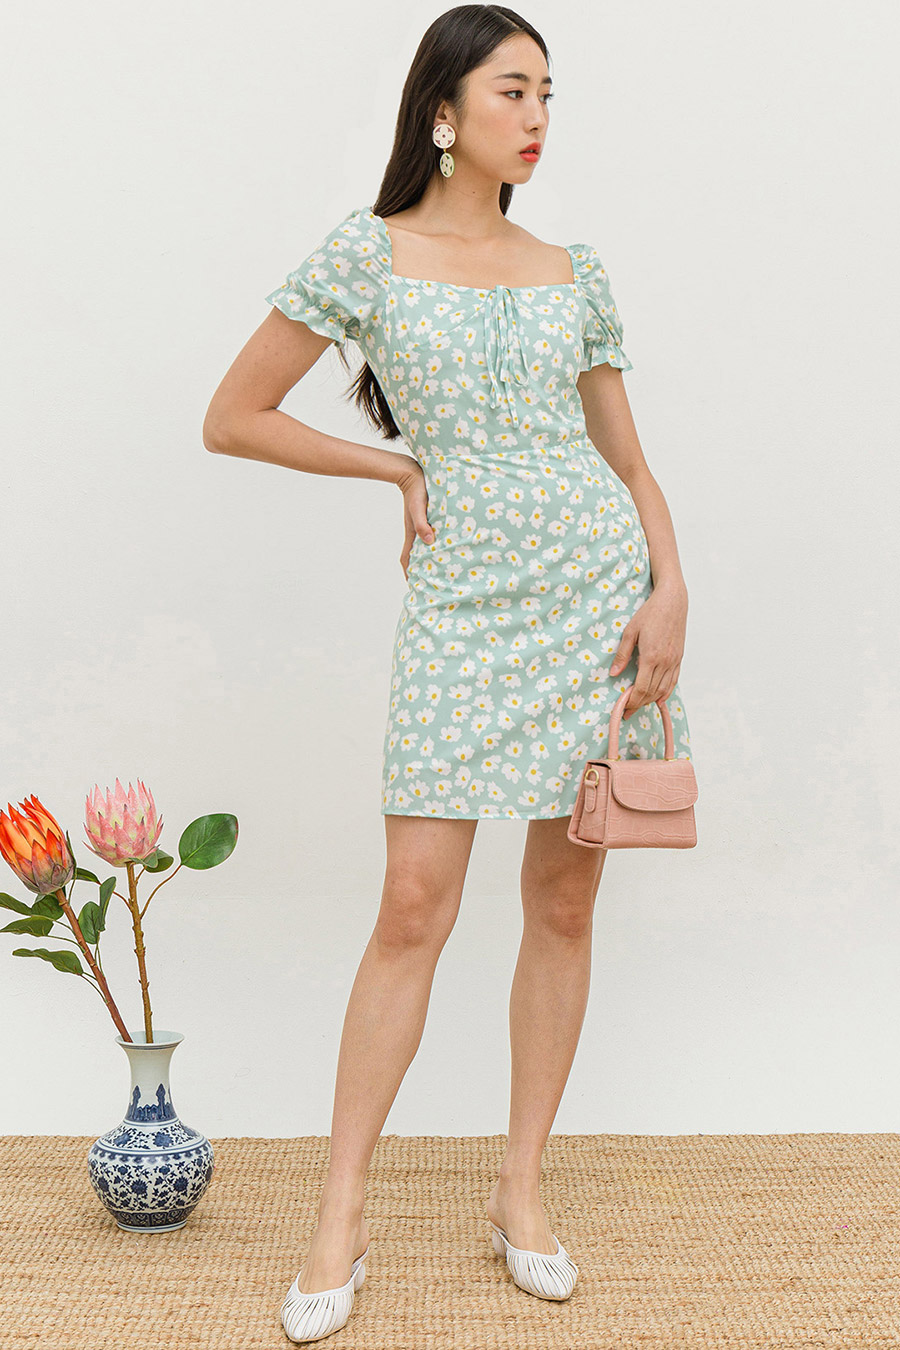 *RESTOCKED* NATALIE DRESS - DAISY